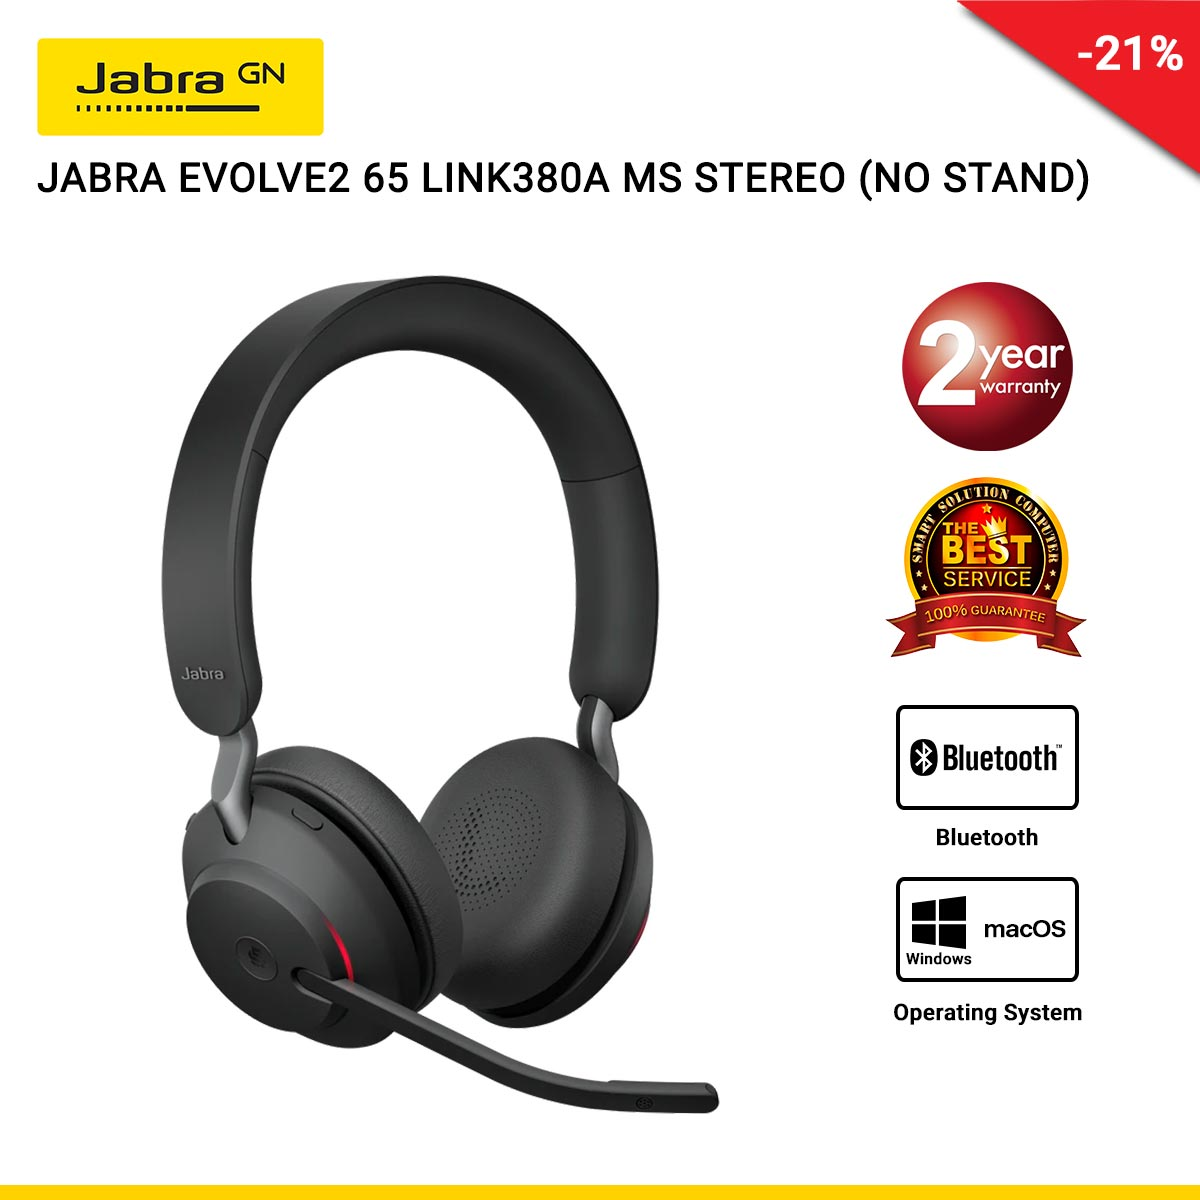 JABRA EVOLVE2 65 LINK380A MS STEREO BLACK (NO STAND)